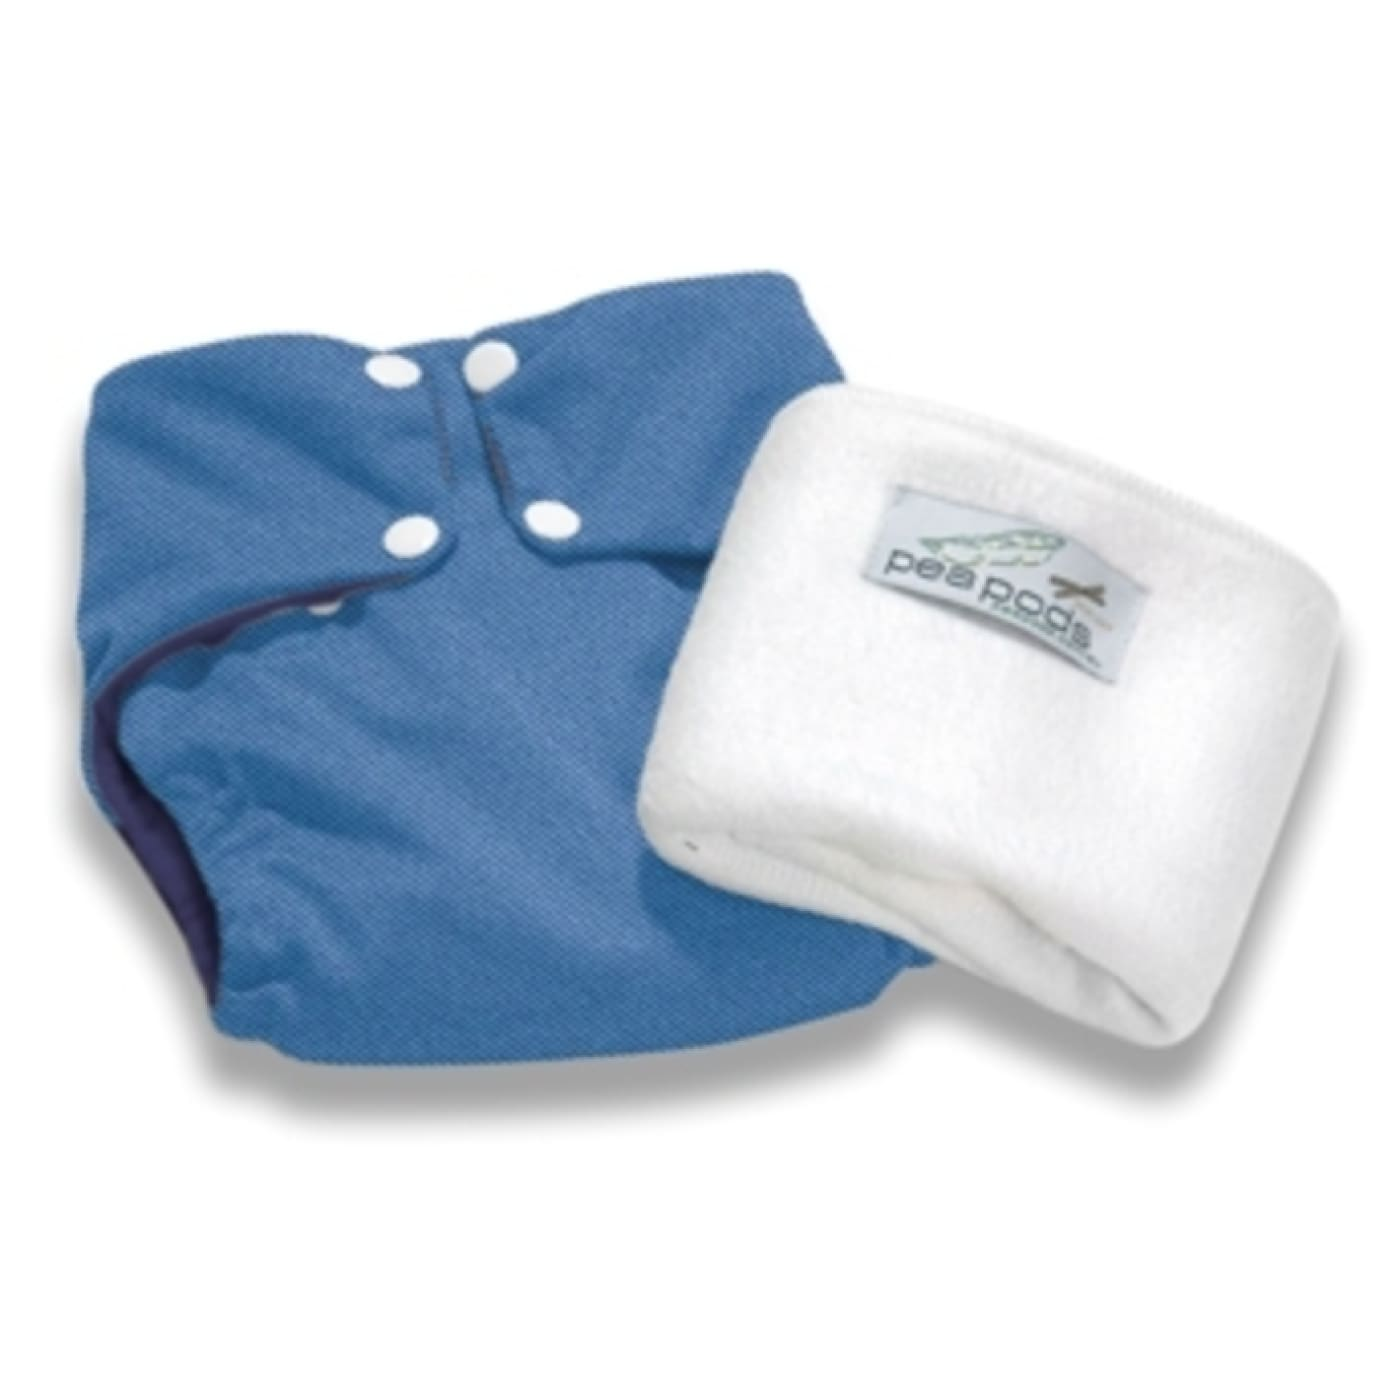 Pea Pods One Size Fits All Nappy - Denim - BATHTIME & CHANGING - NAPPIES/WIPES/ACC ECO RANGE